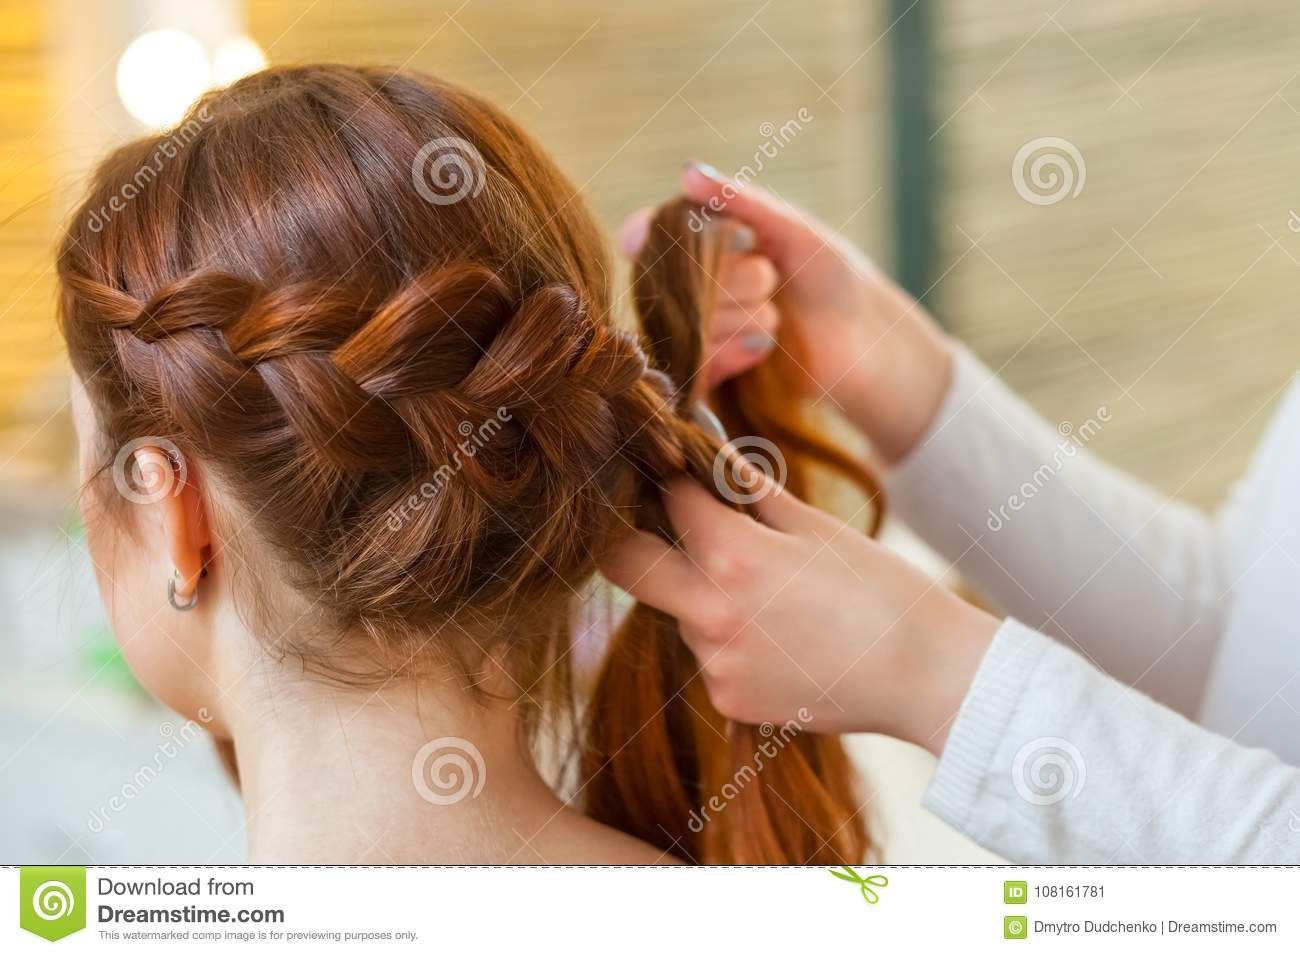 Beautiful Girl With Red Hair Hairdresser Weaves A Braid Close Up